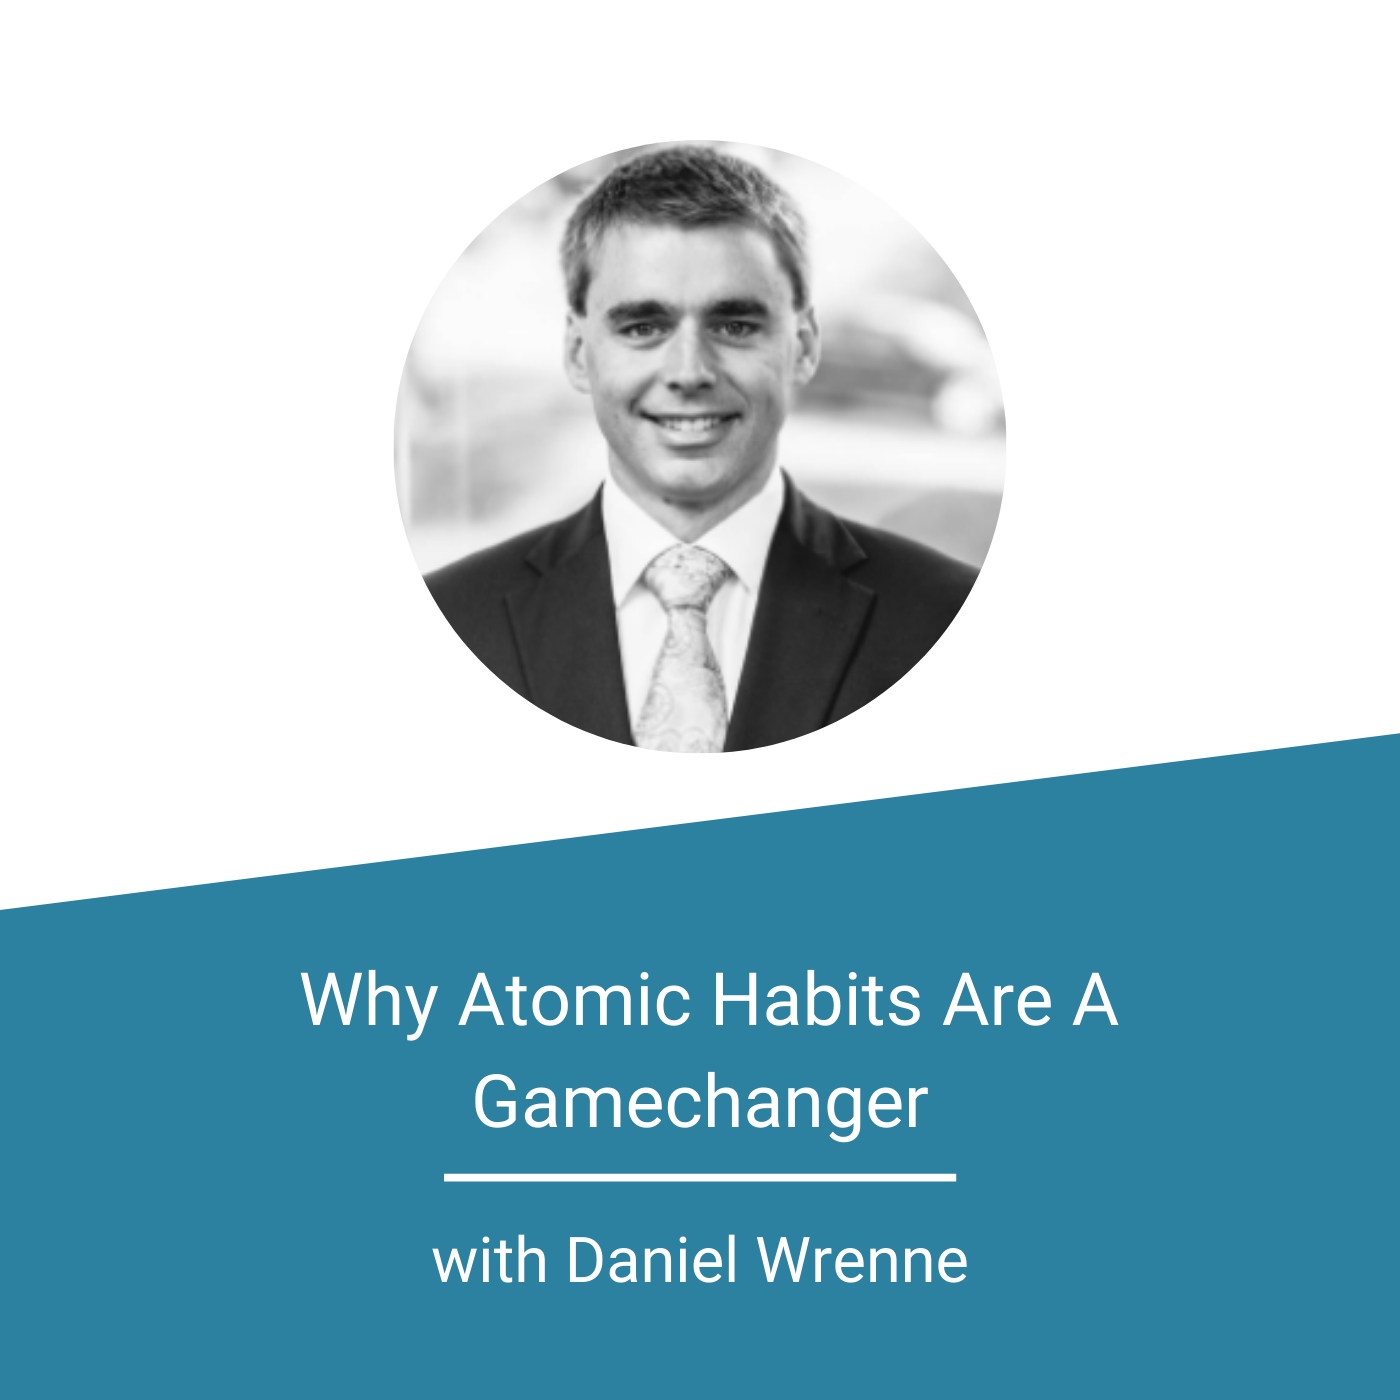 Featured Image - Why Atomic Habits Are A Gamechanger